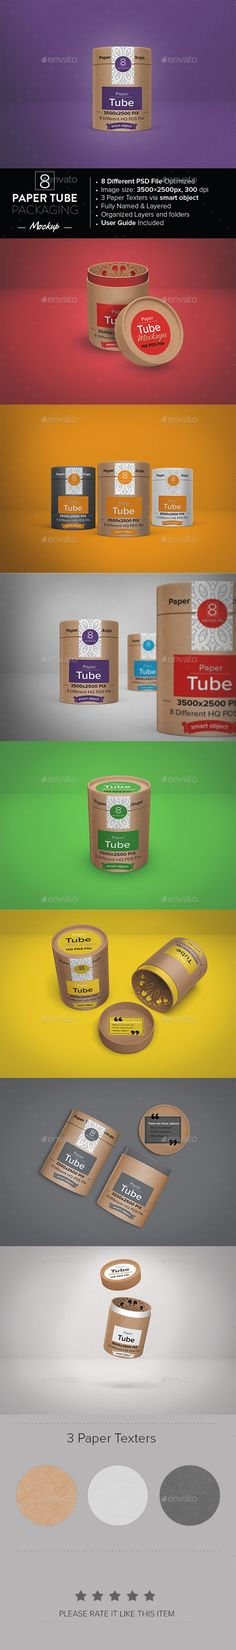 Paper Tube Packaging Mockup | Download: http://graphicriver.net/item/paper-tube-packaging-mockup/10068480?ref=ksioks